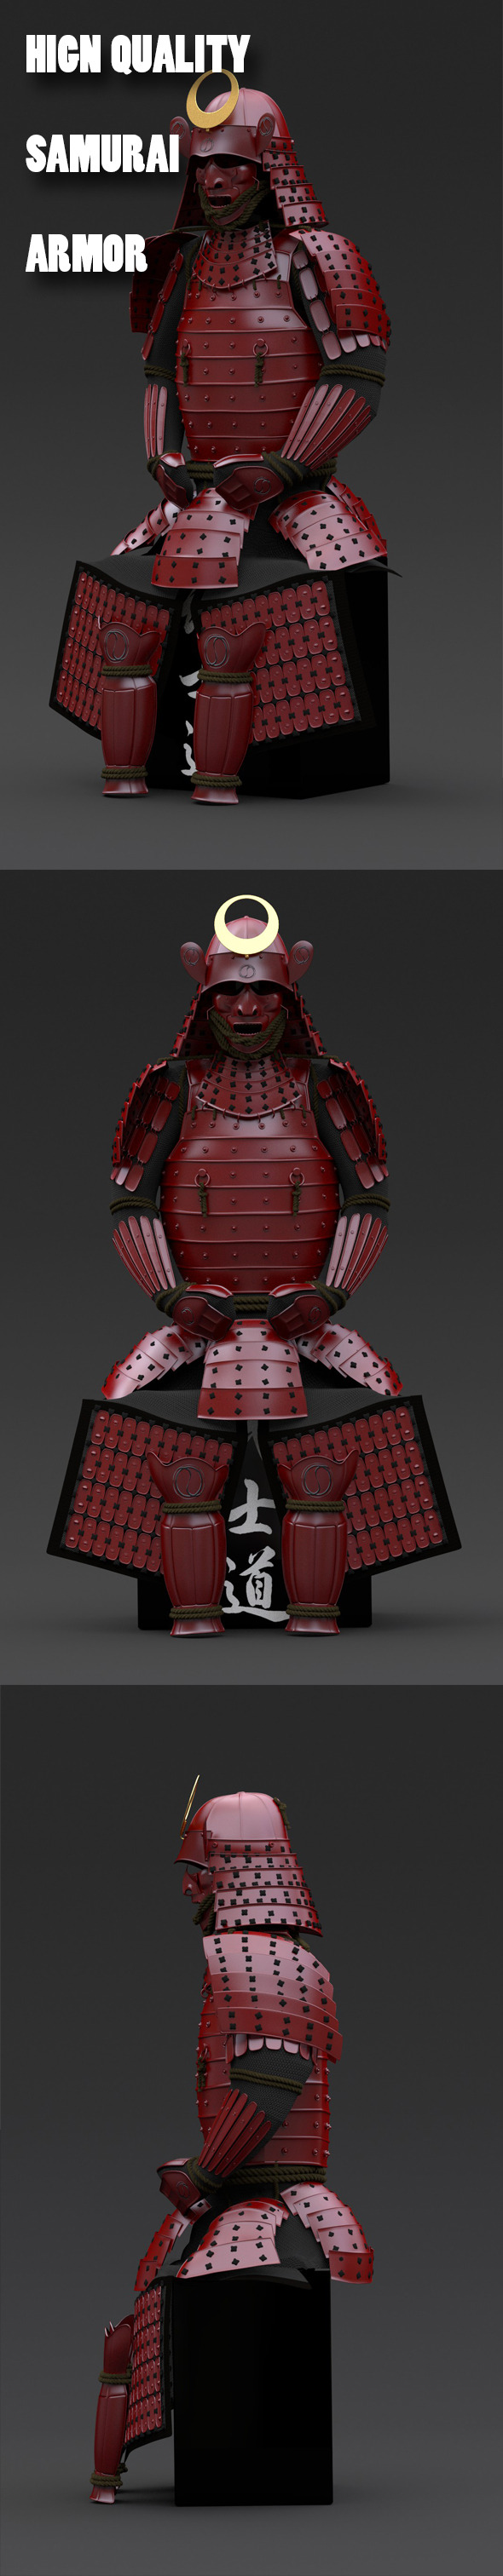 Samurai Armor - 3DOcean Item for Sale